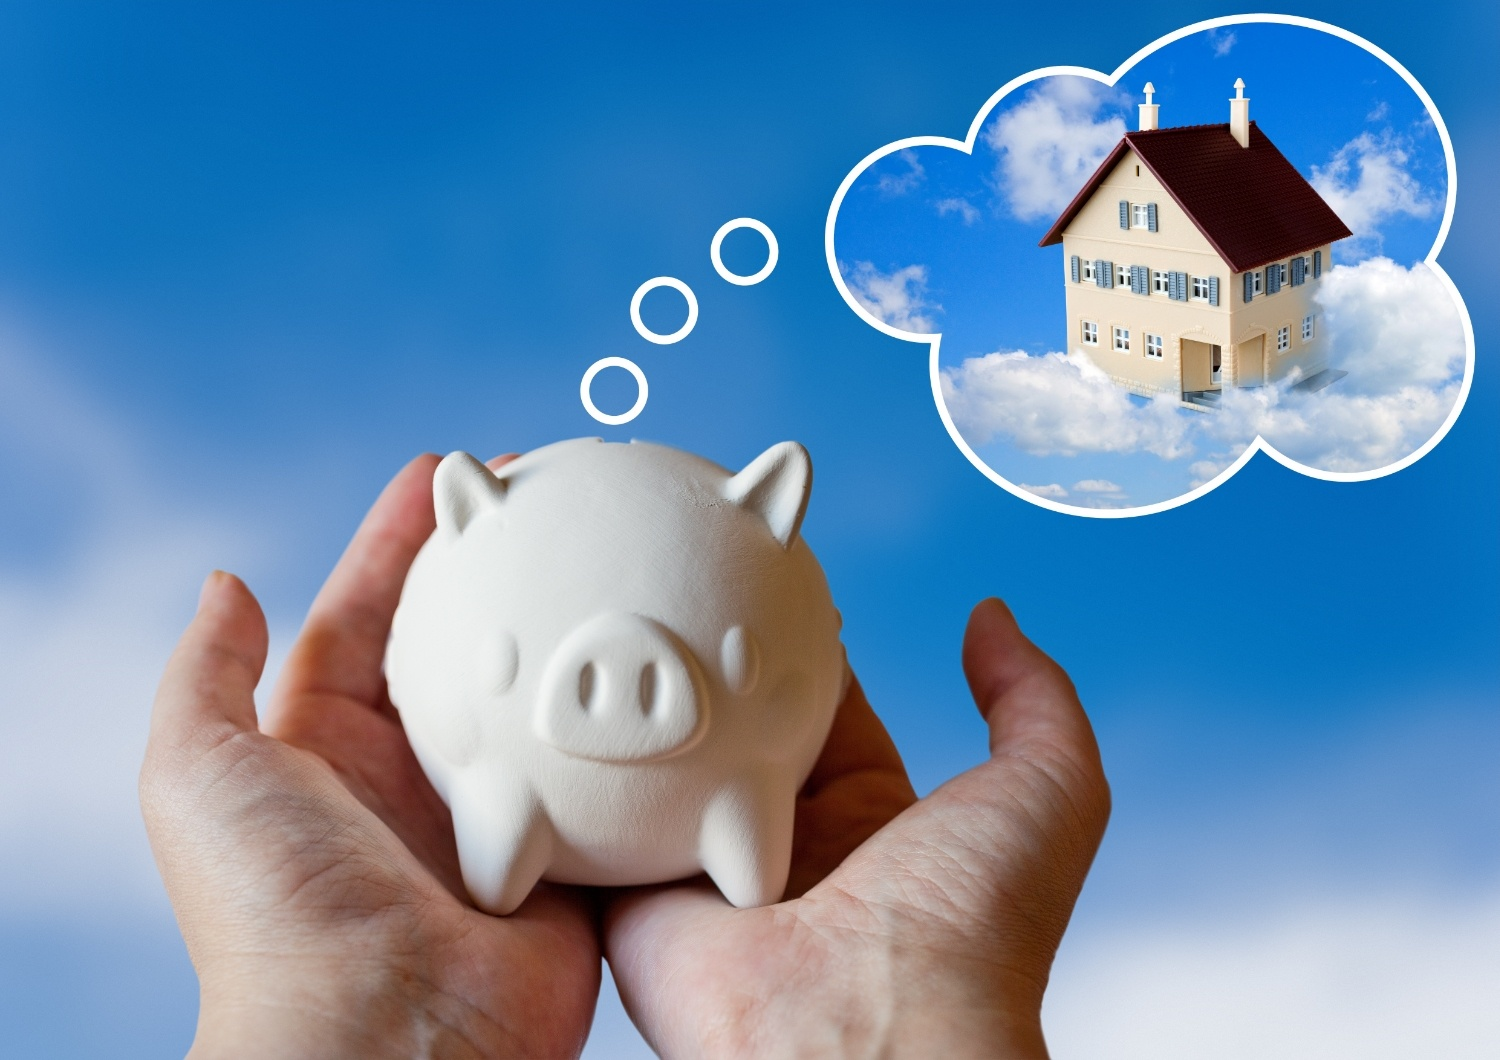 Set a realistic budget for your home purchase.